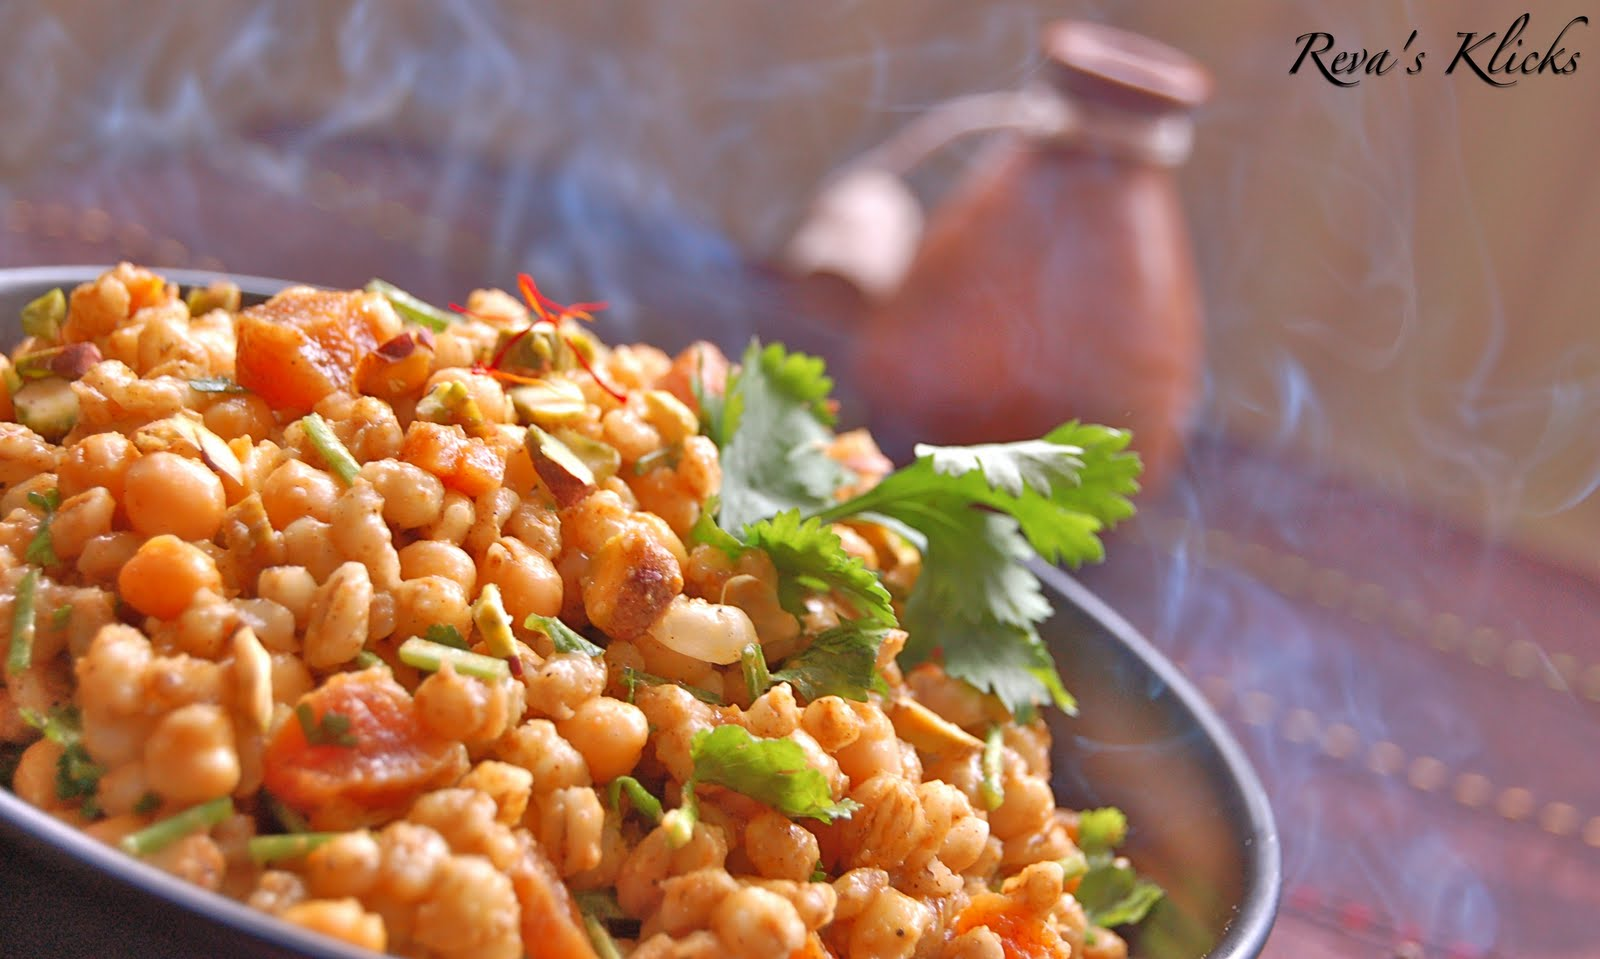 bursting with health benefits chickpeas and barley make an awesome